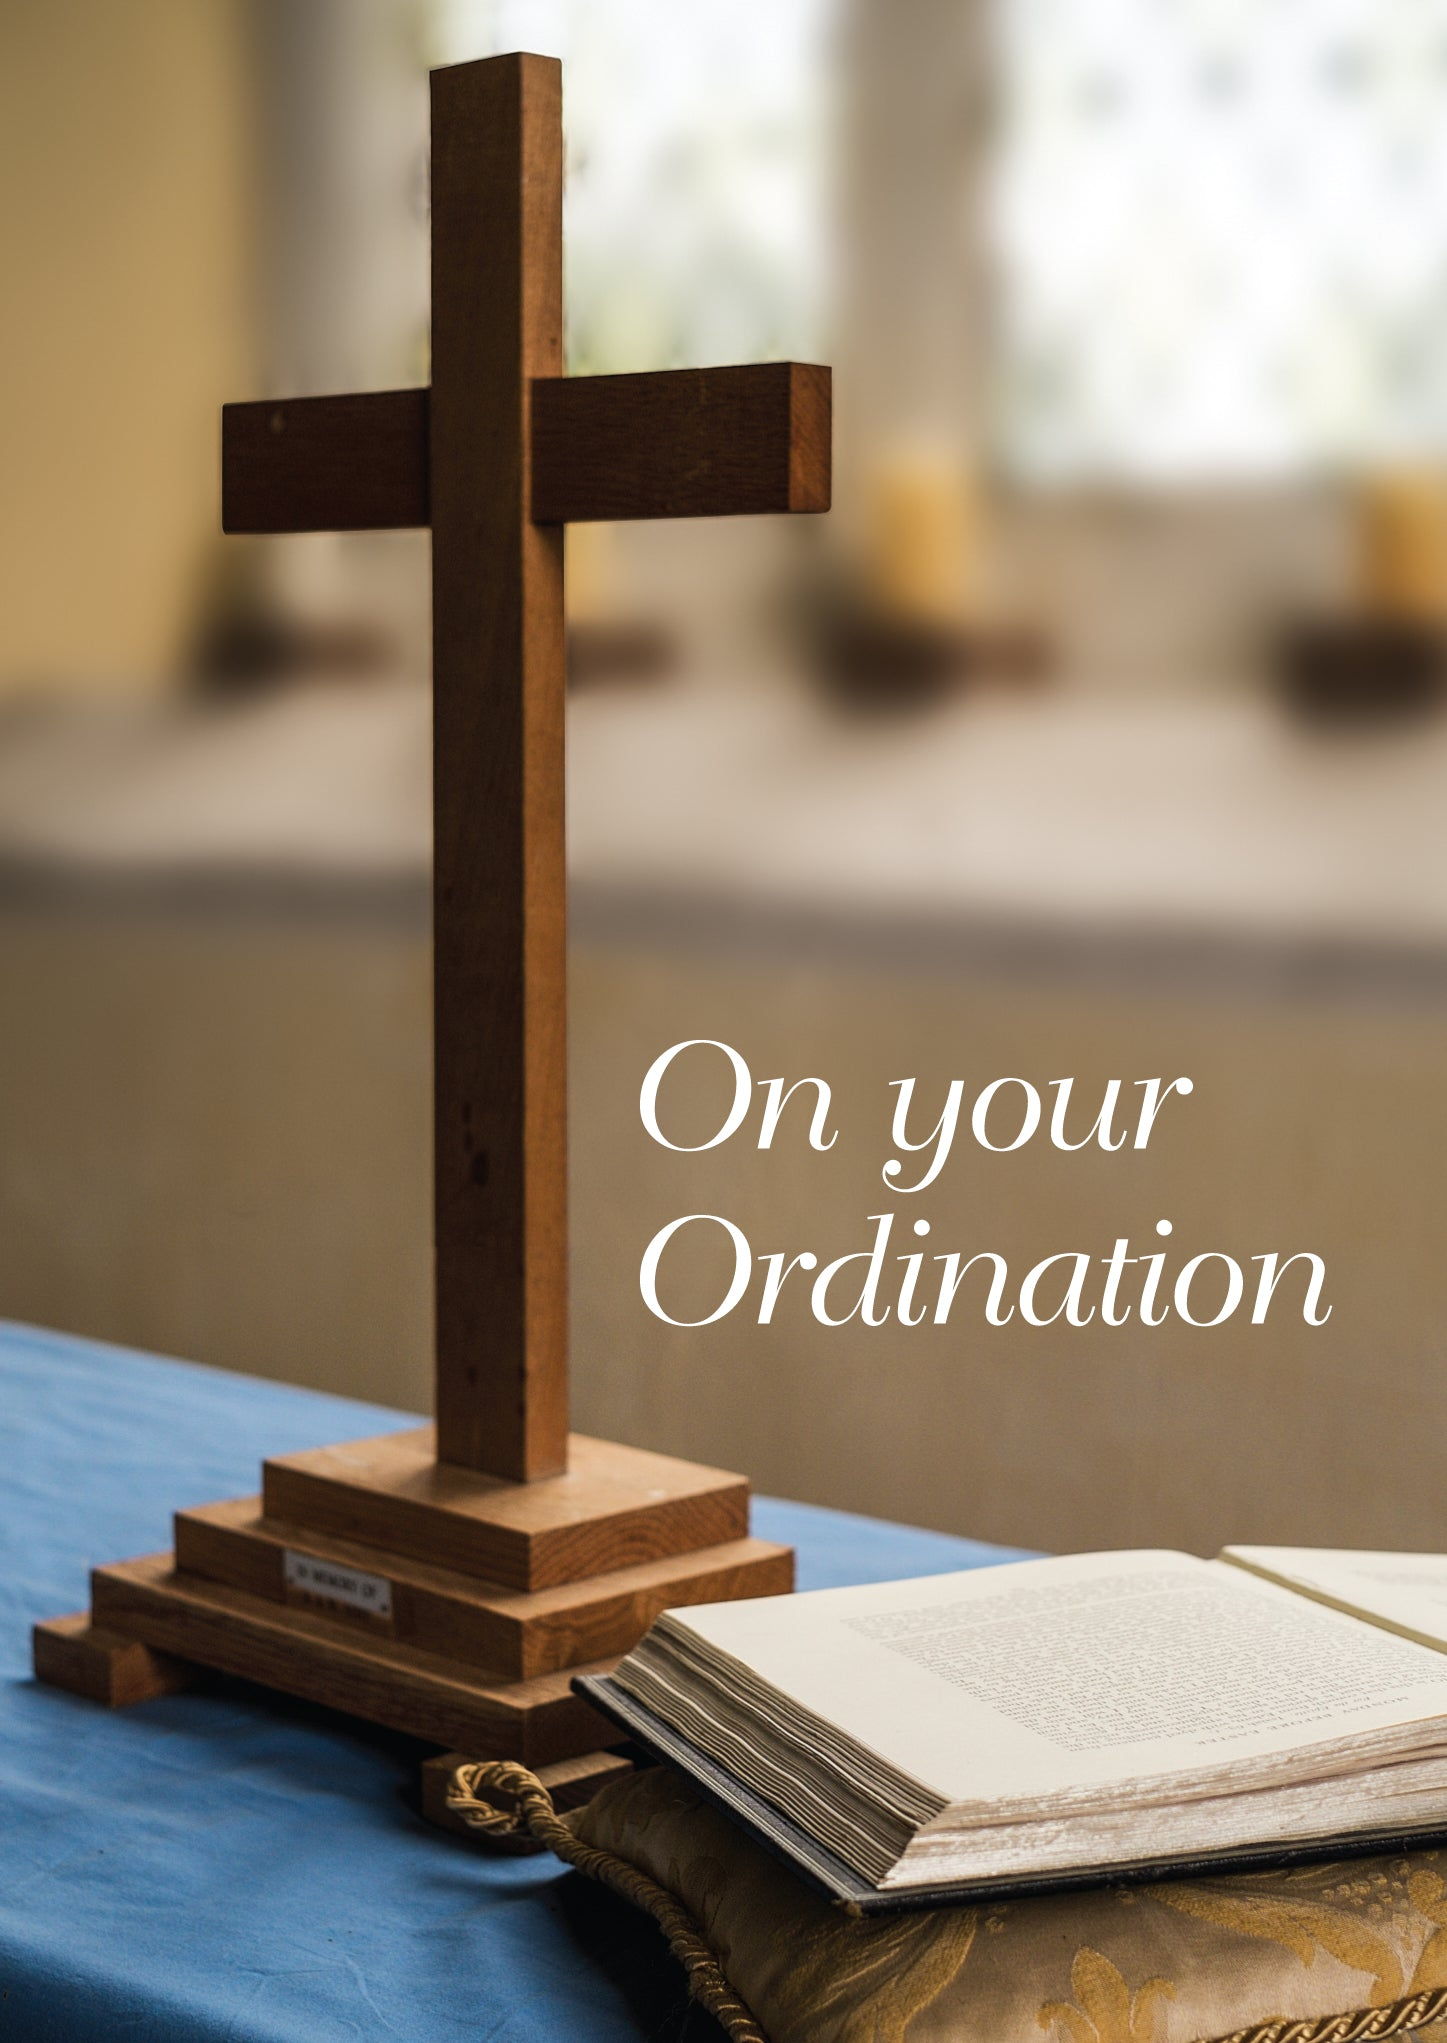 OrdinationOrdination